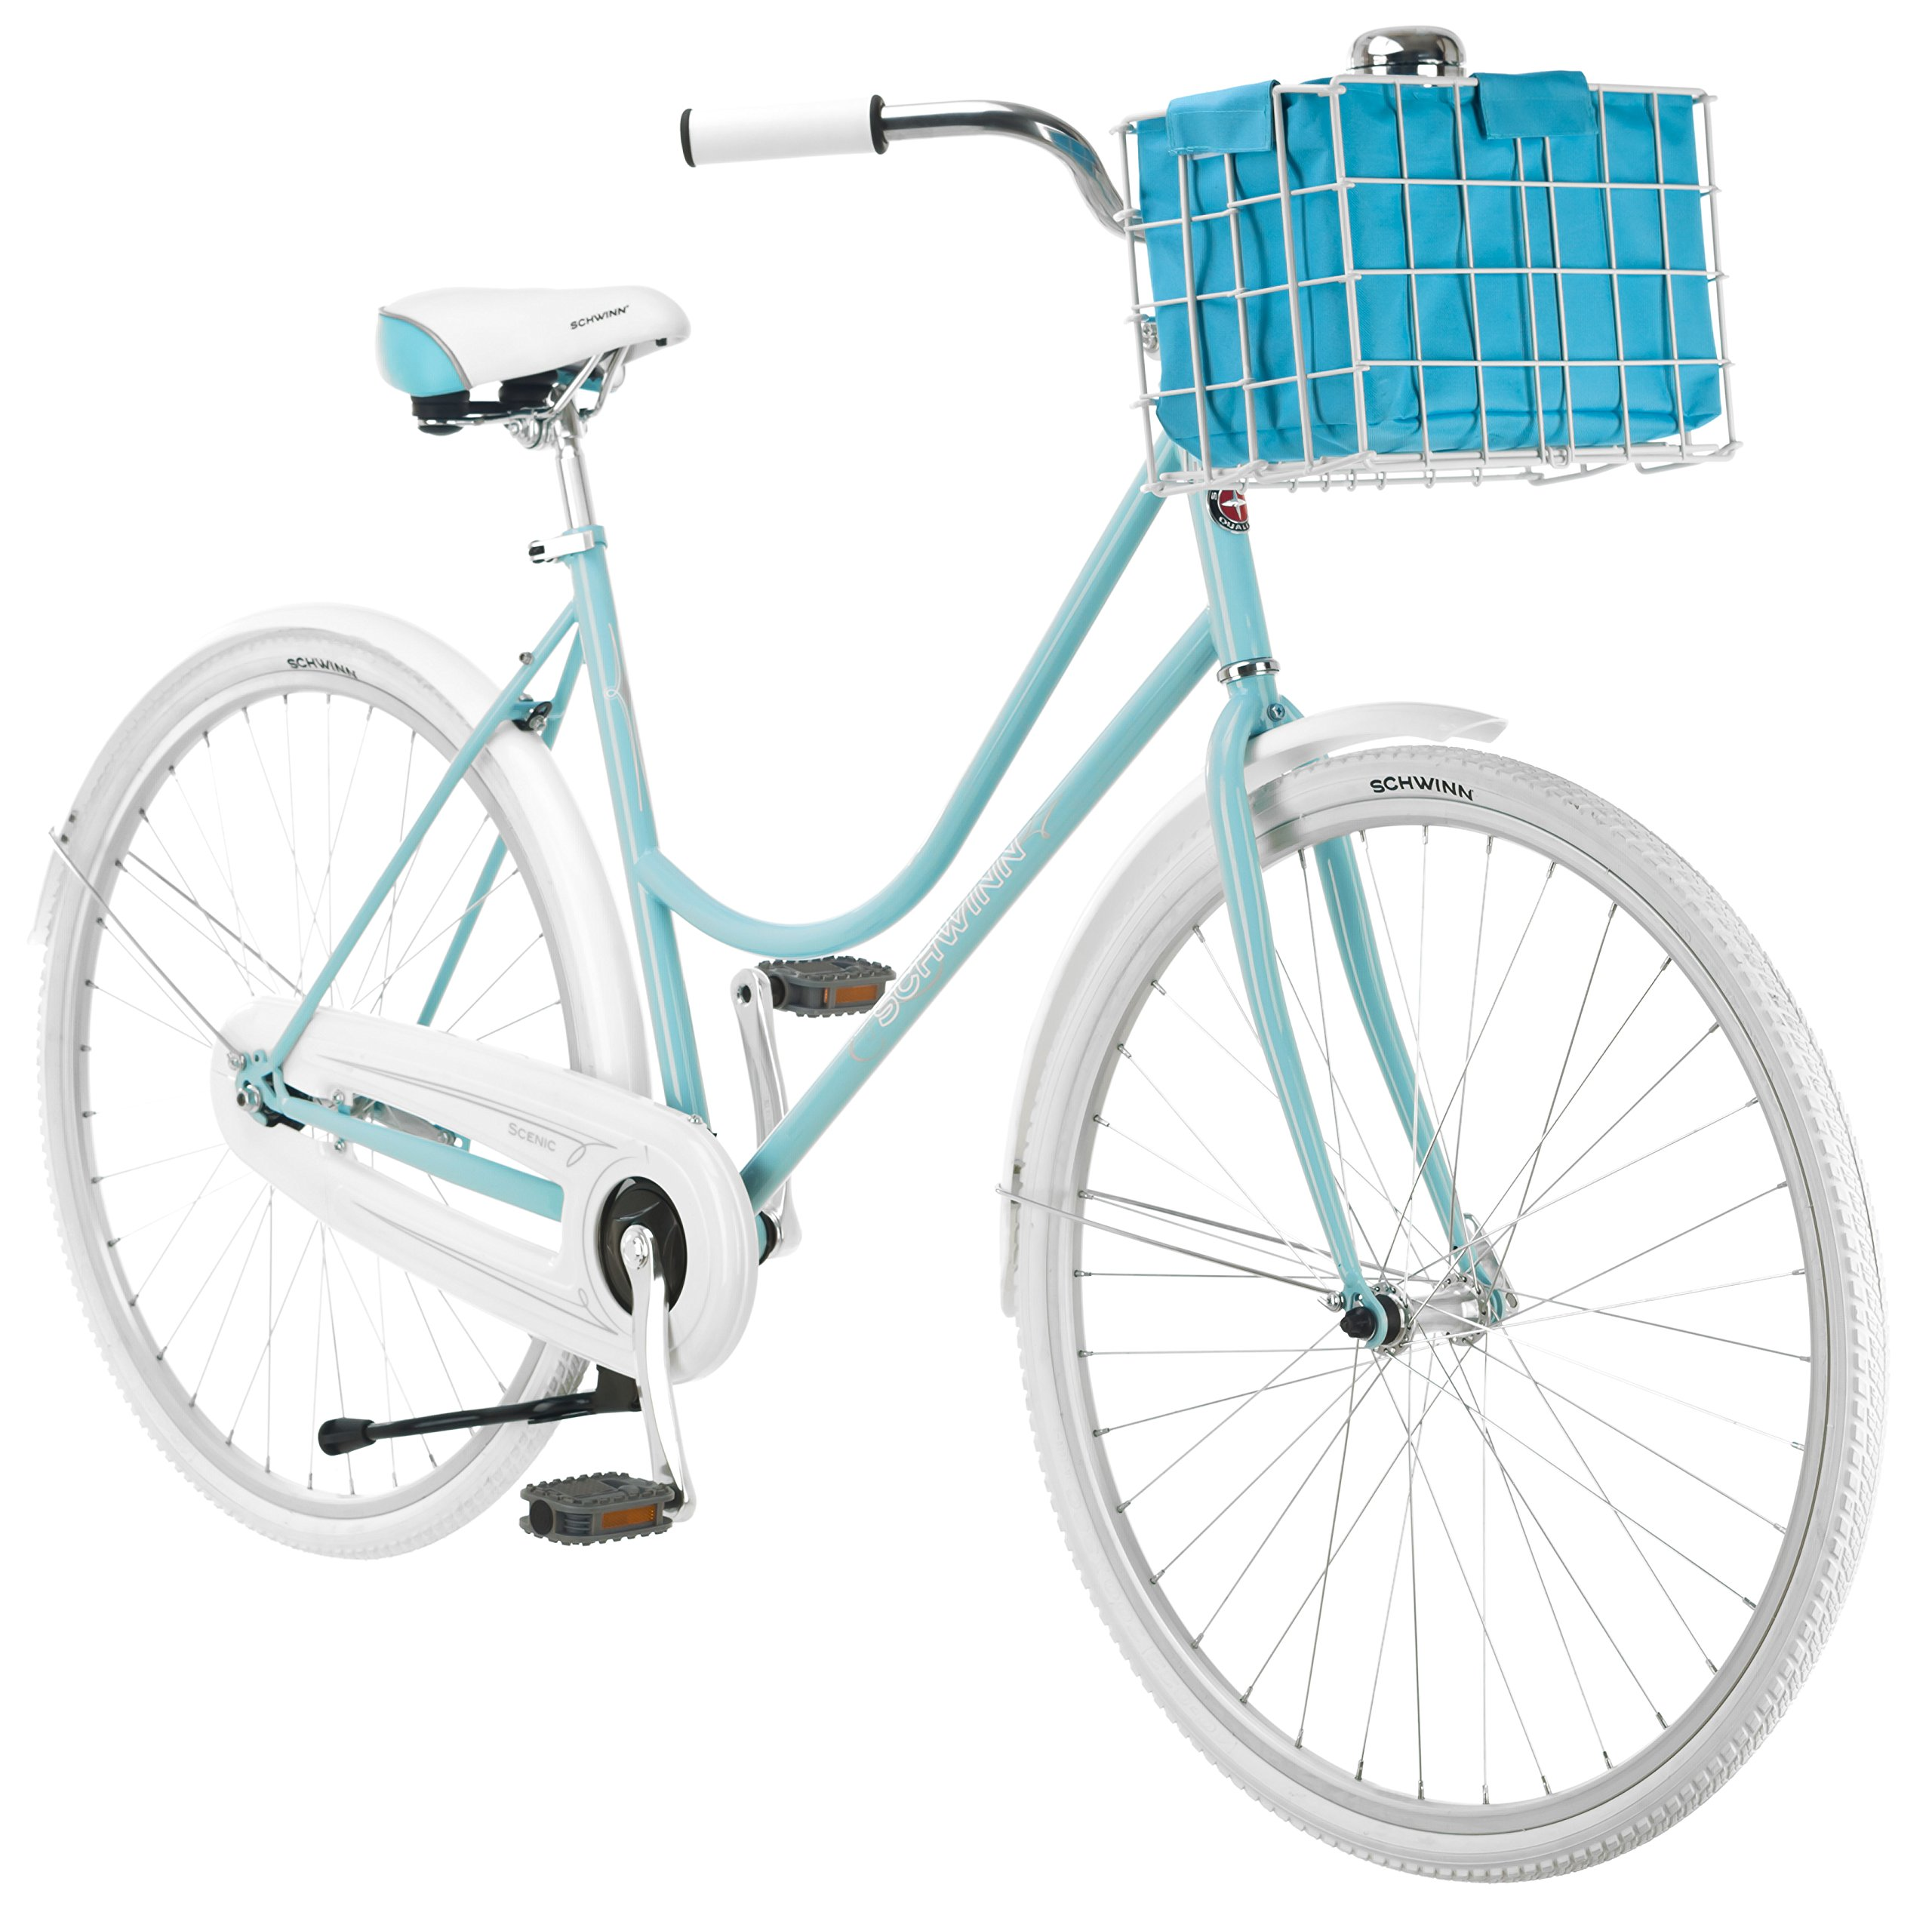 Schwinn Women's Scenic 700c Dutch Bicycle, Light Blue, 16-Inch Frame